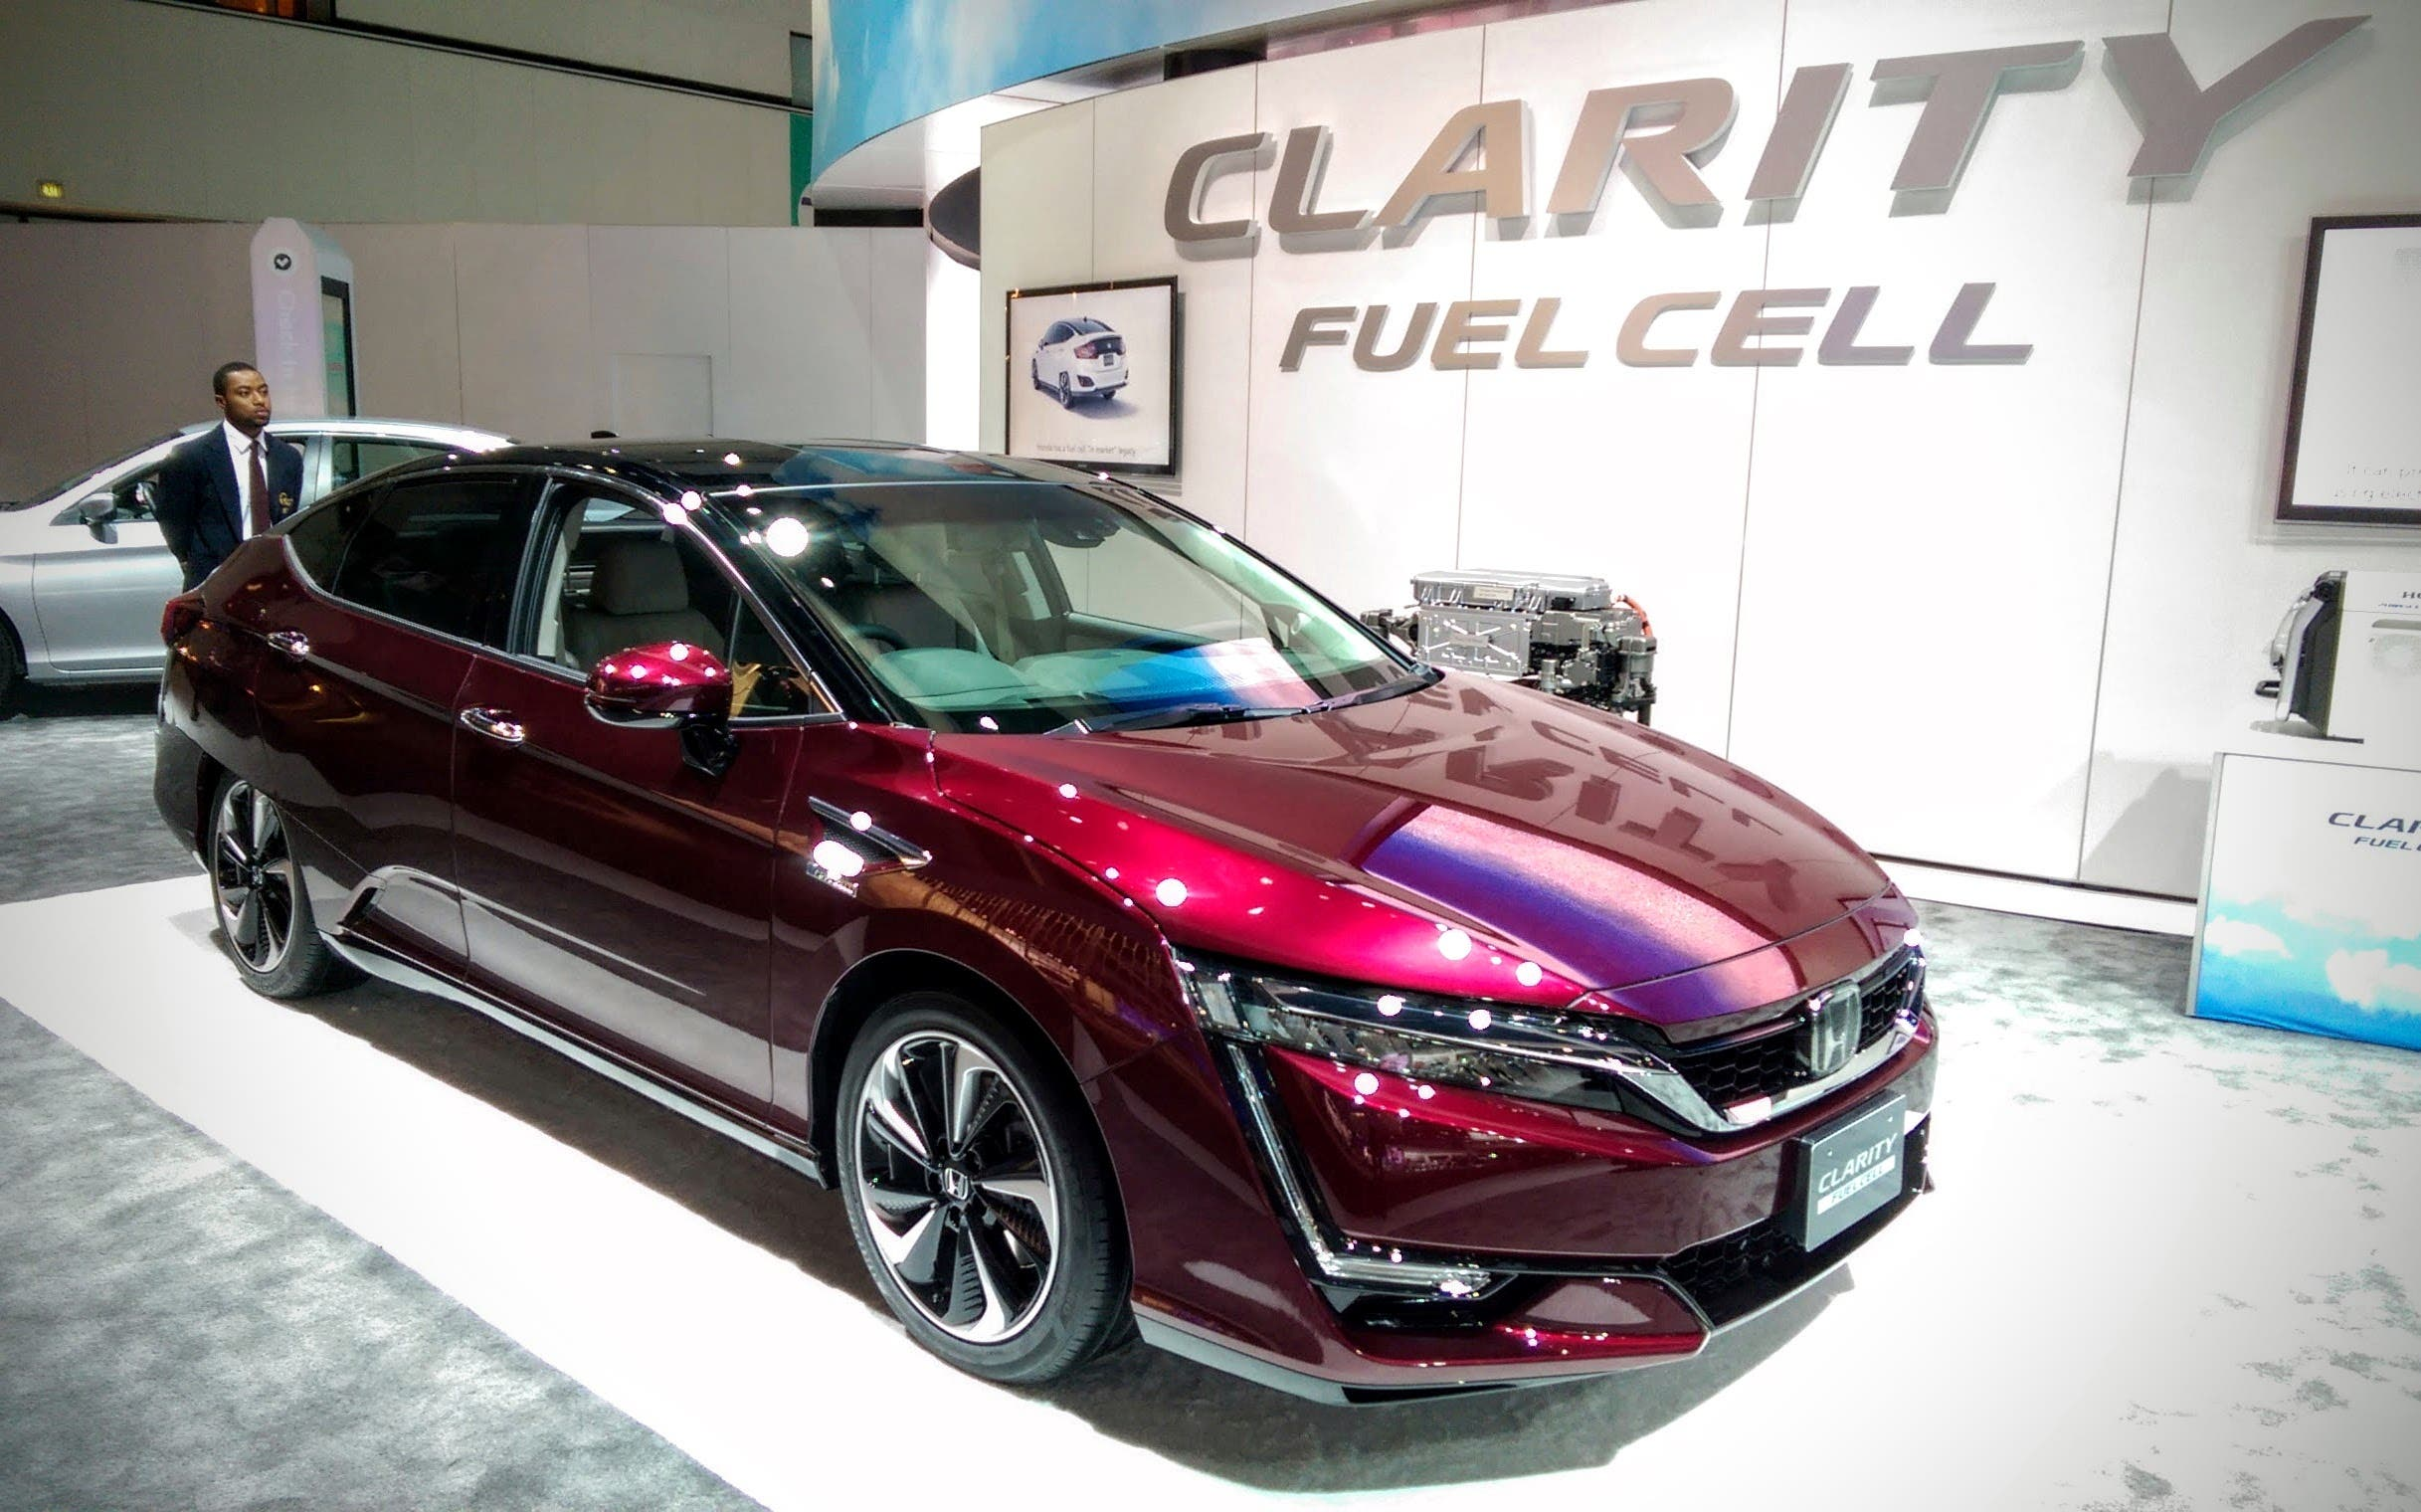 New Fuel Cell Vehicles Come Up Short | CleanTechnica